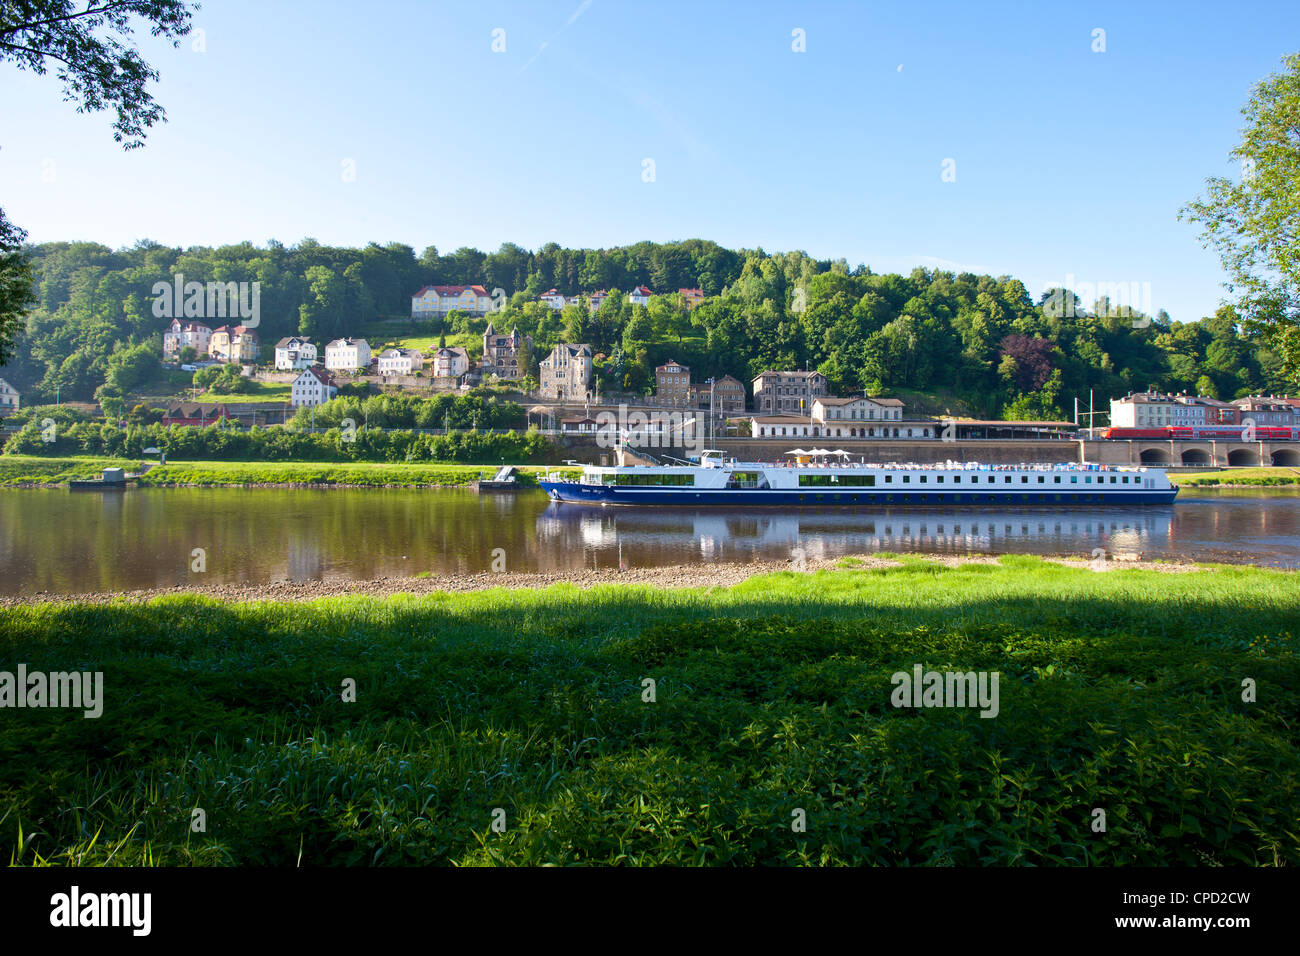 Cruise ship floating along the River Elbe, Saxony, Germany, Europe - Stock Image